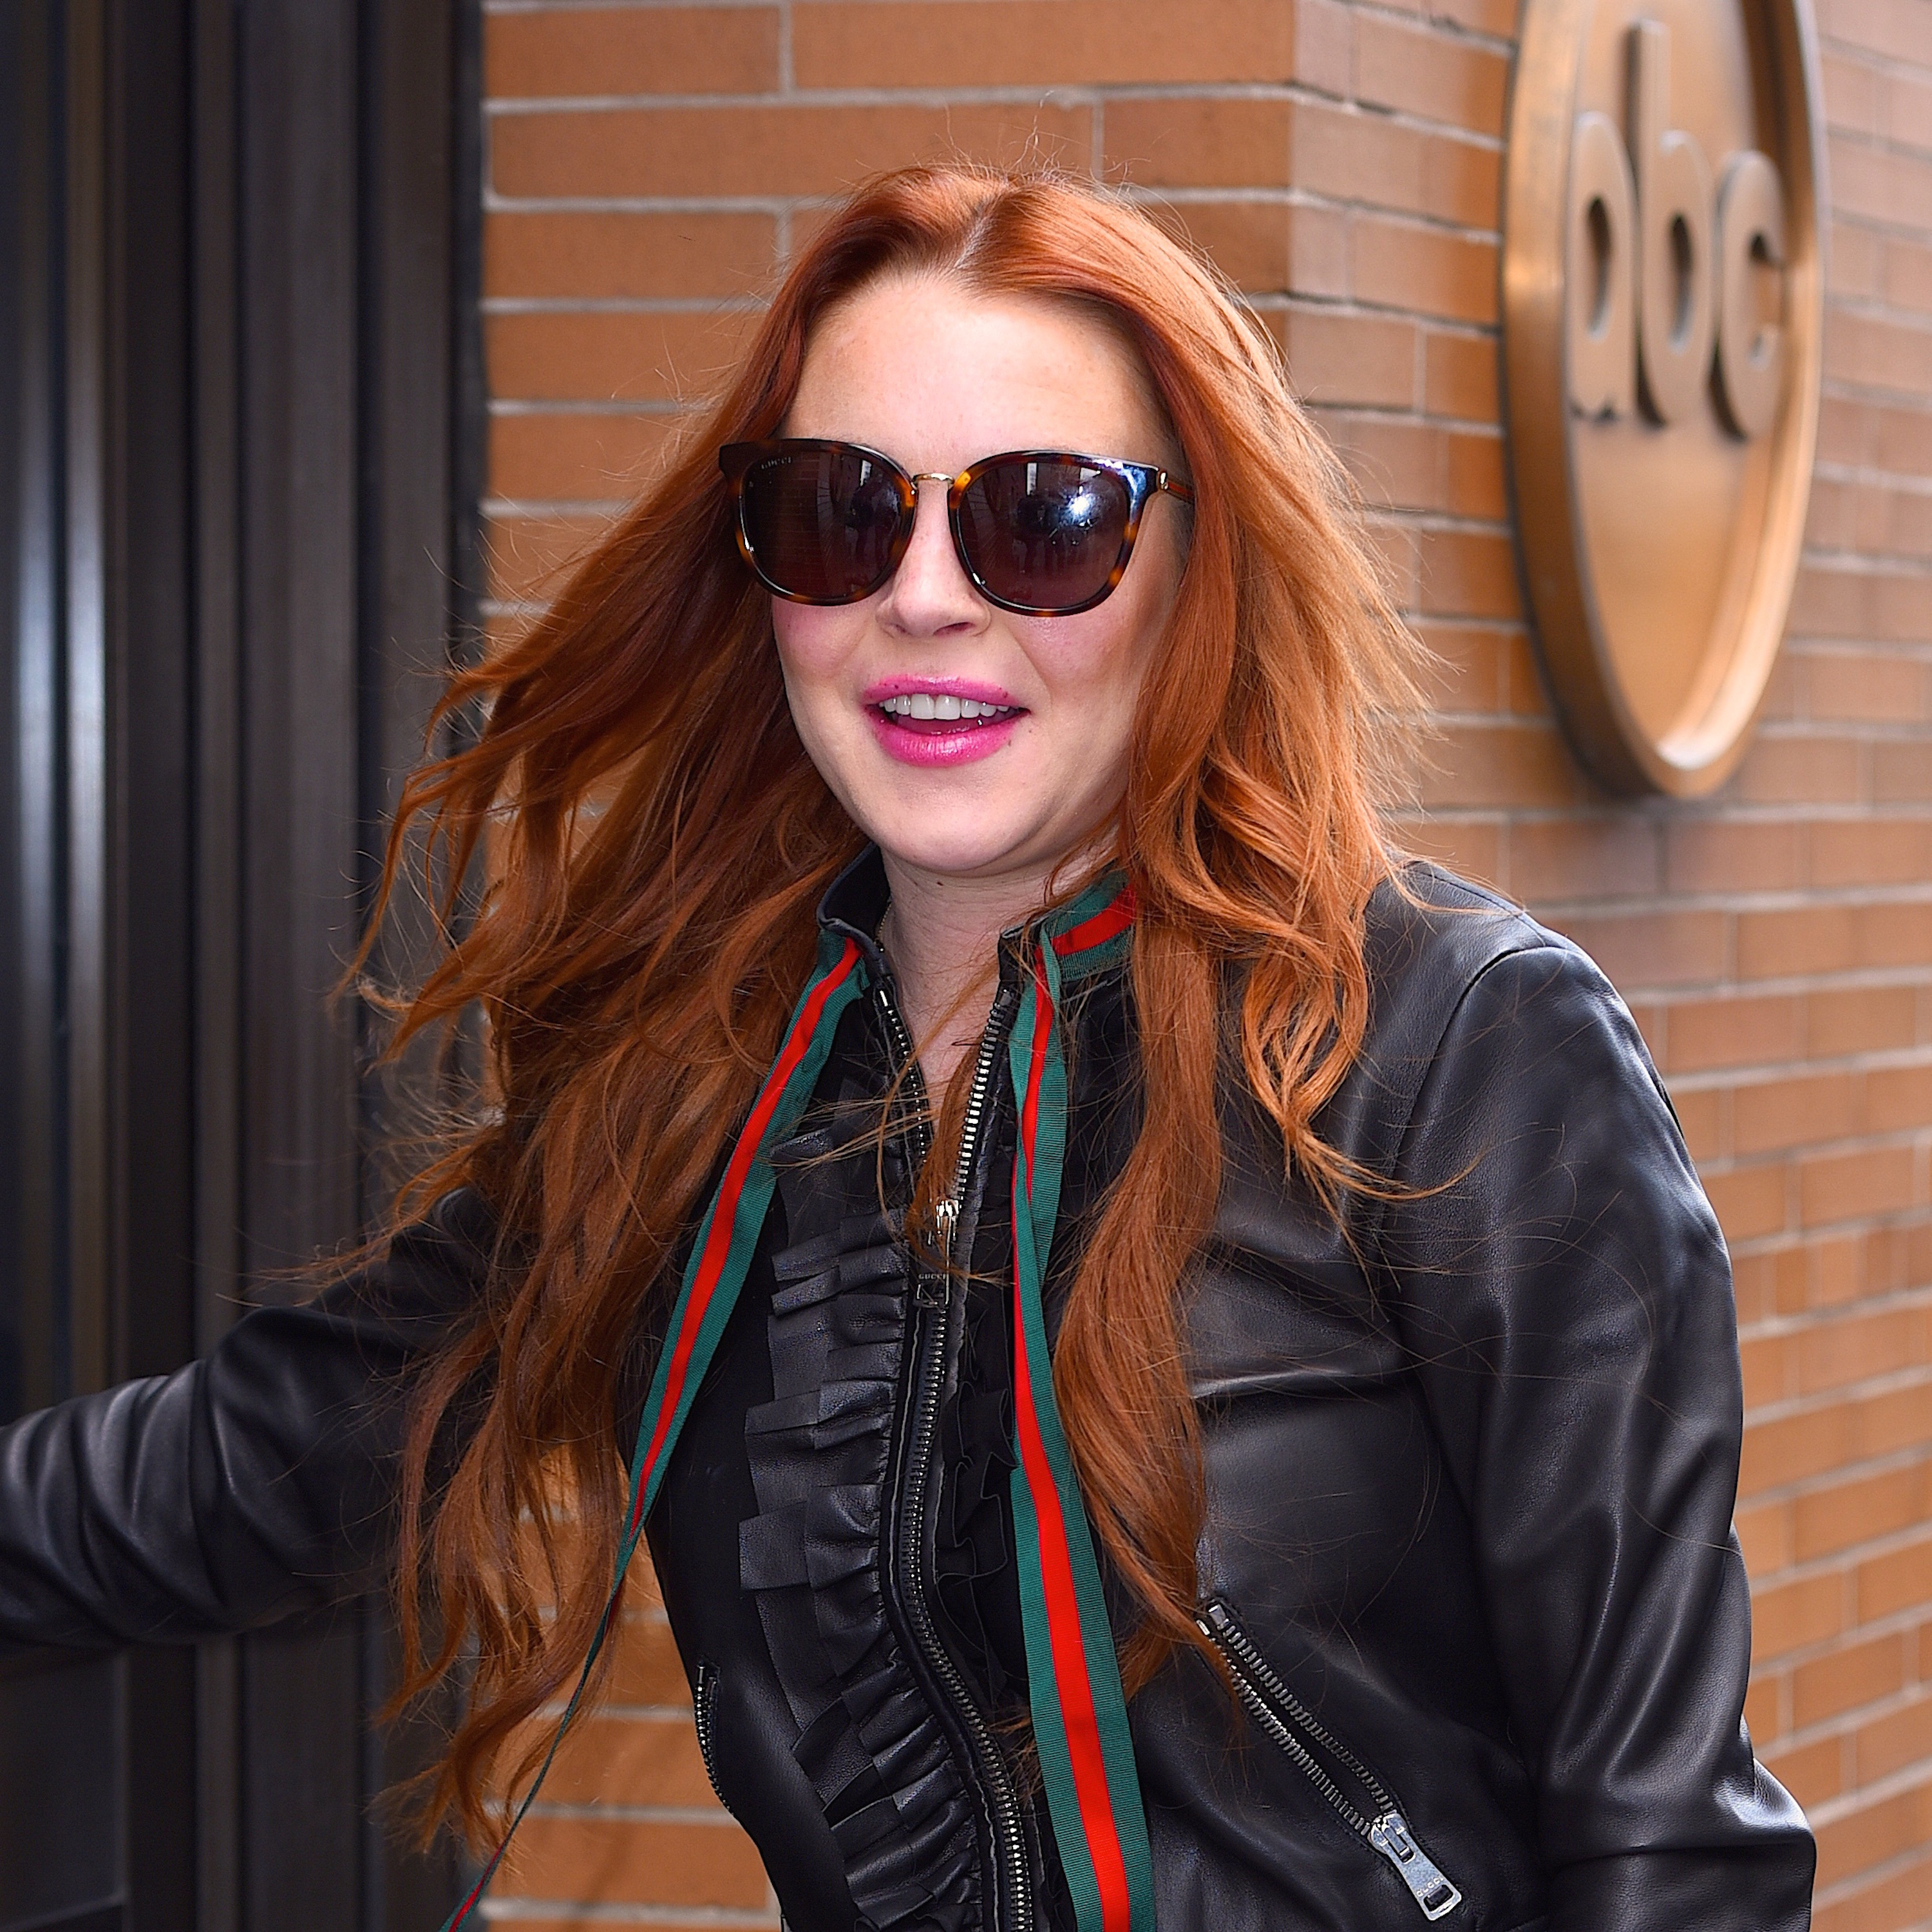 Lindsay Lohan seen out in Manhattan on  February 13, 2017 in New York City.